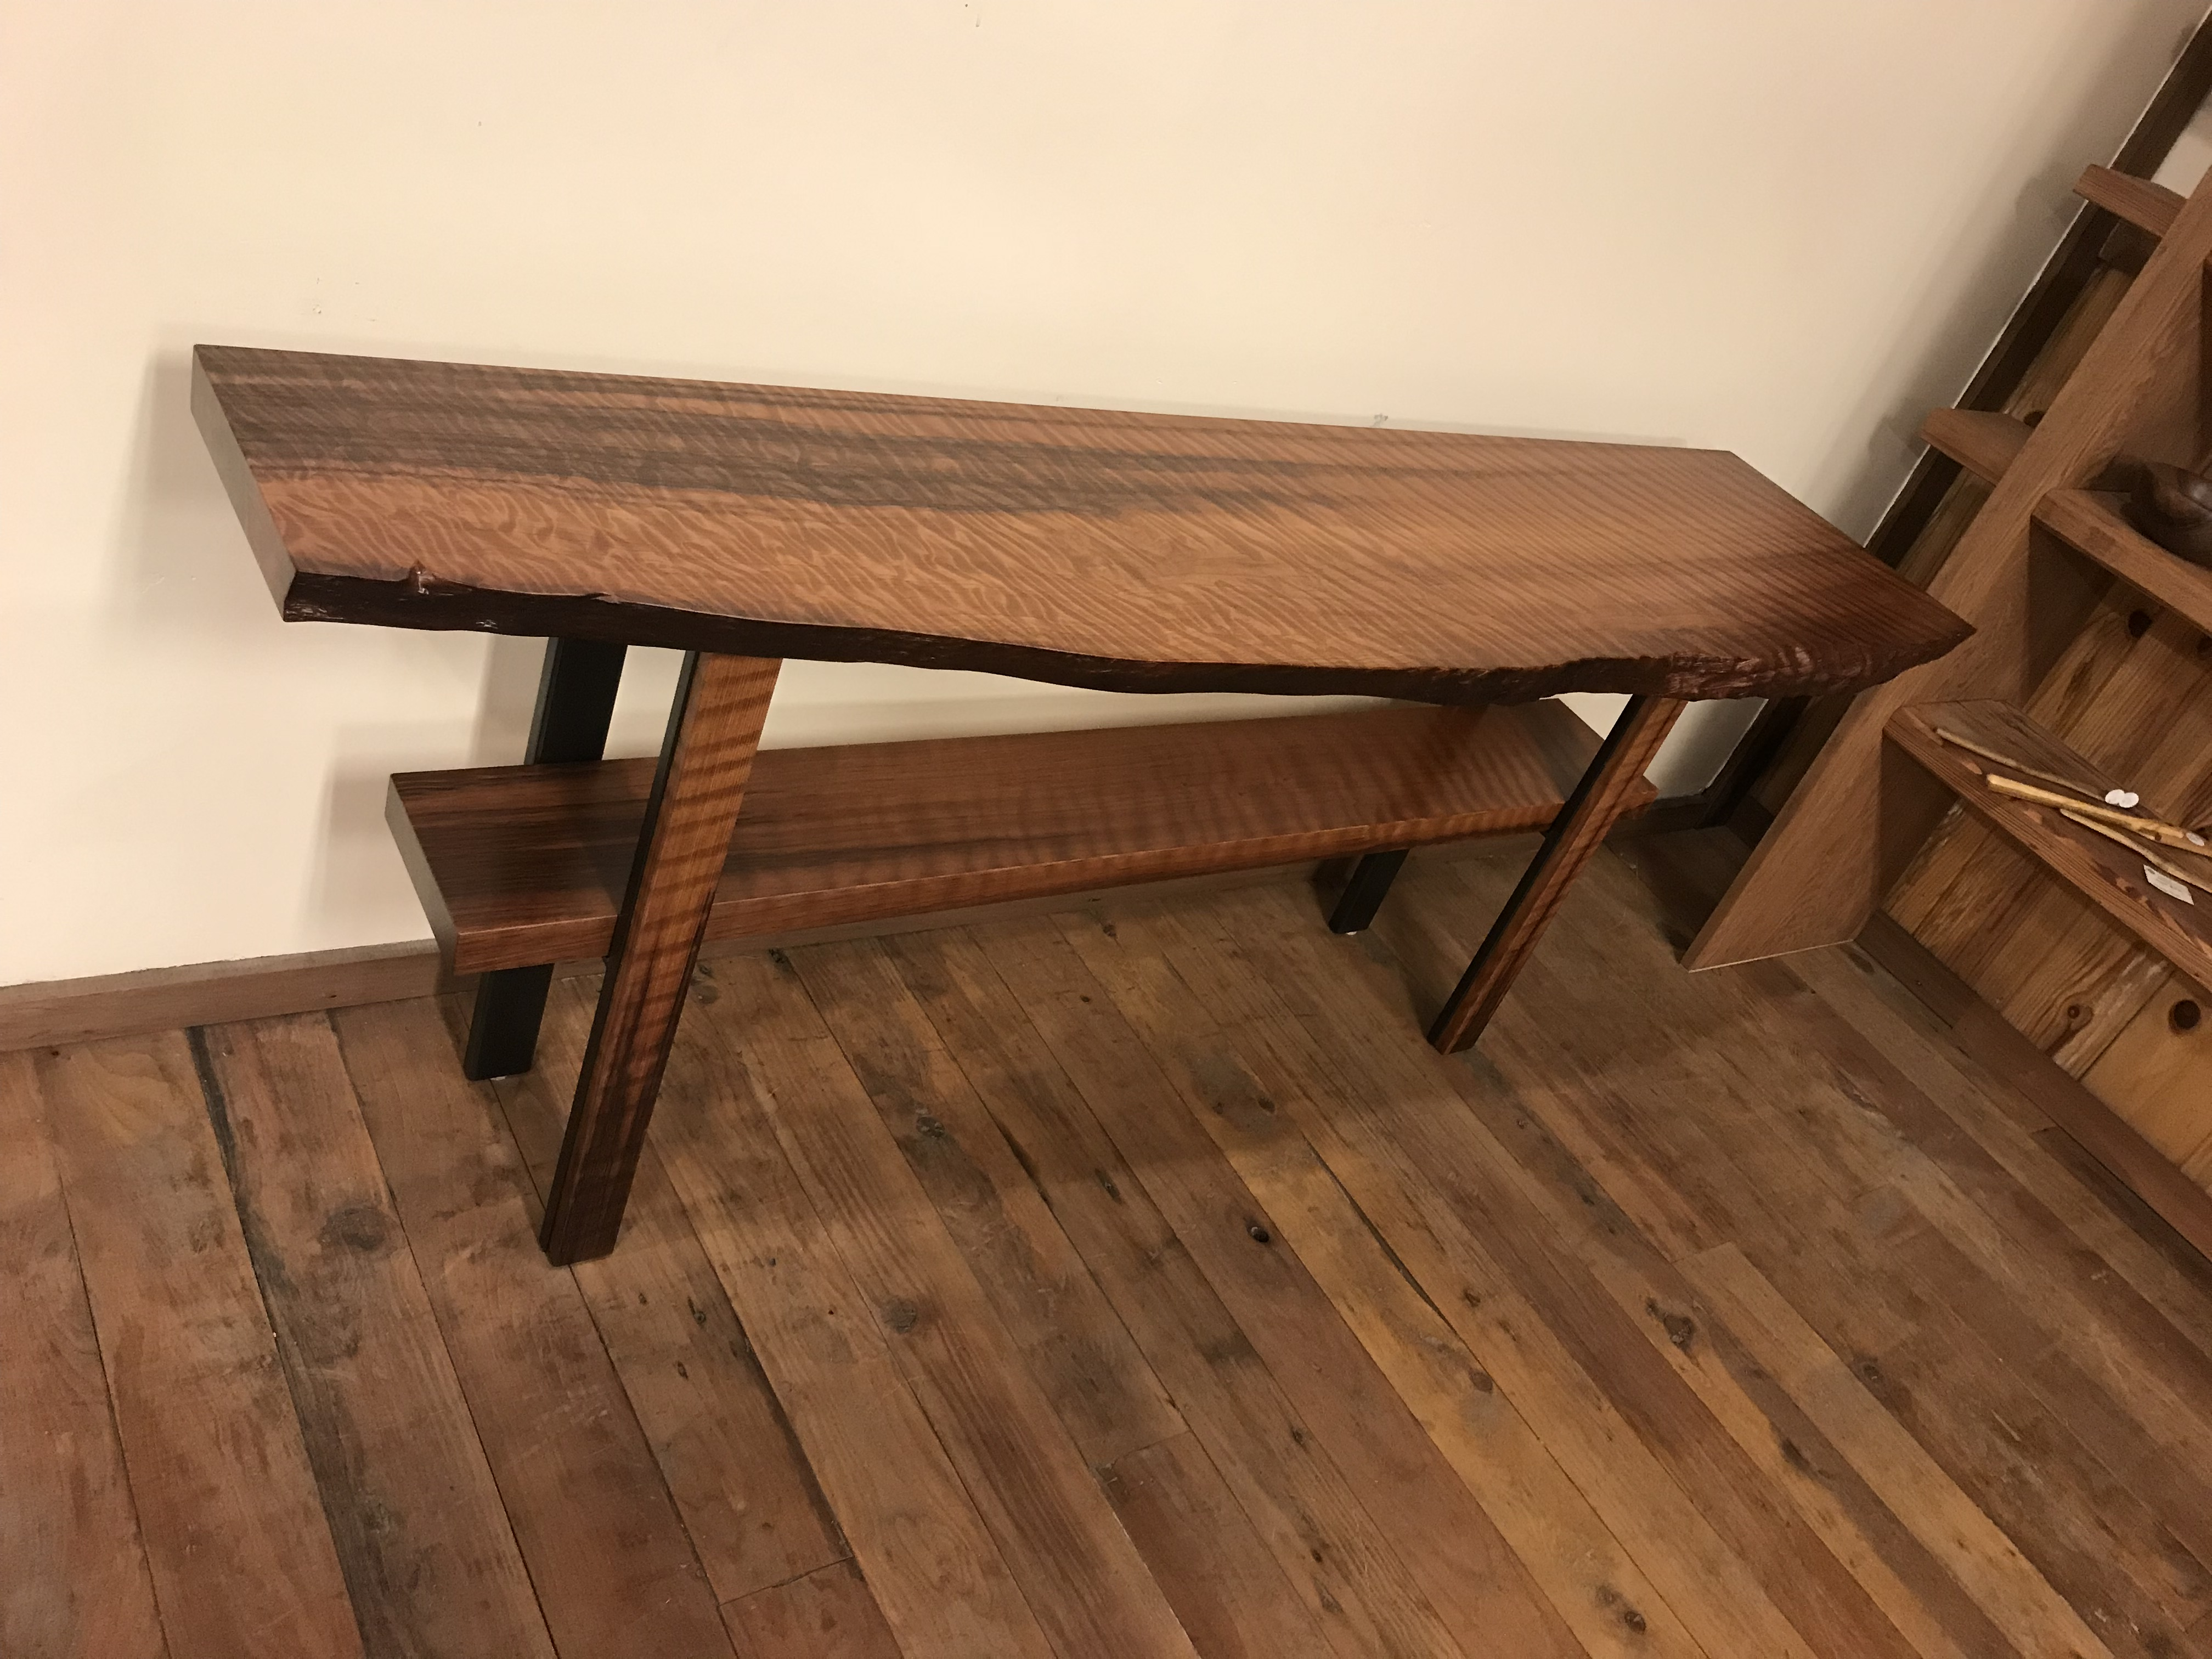 Curly Grain Old Growth Redwood Side Table Andersons Alternatives - Redwood side table